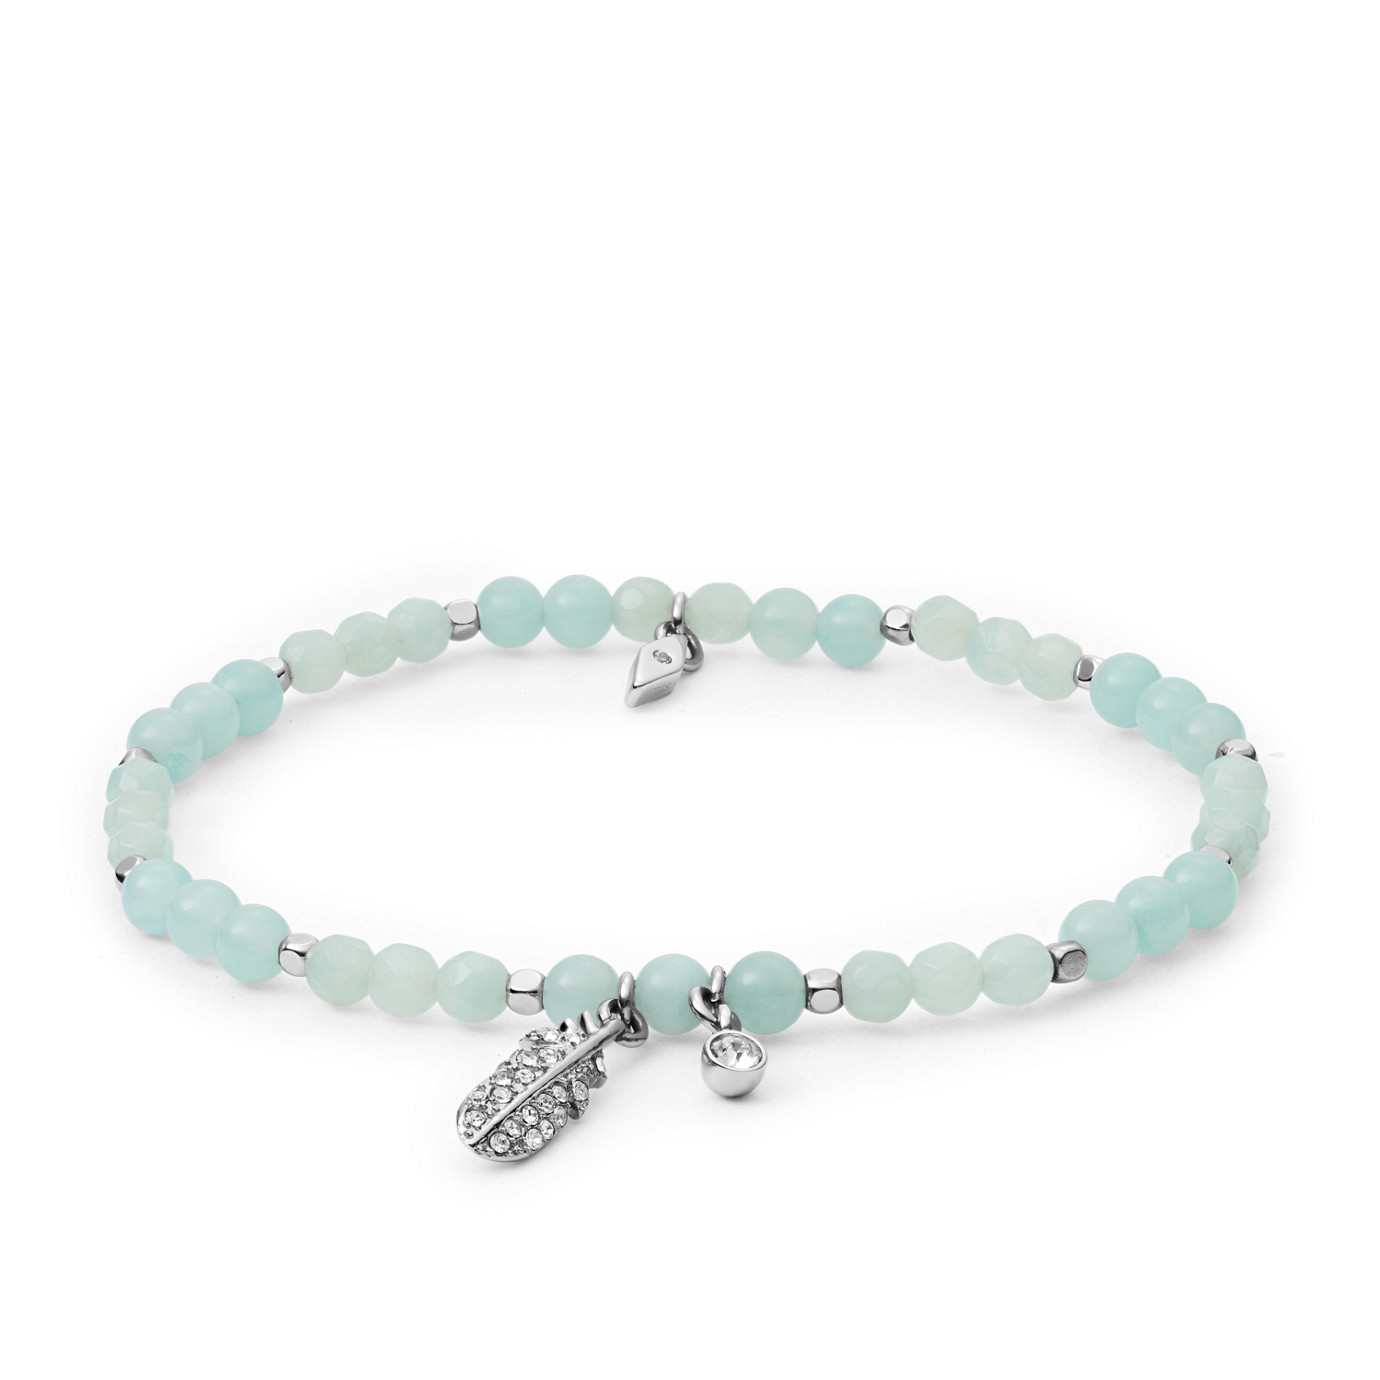 Wellness Blue Semi-Precious Bracelet